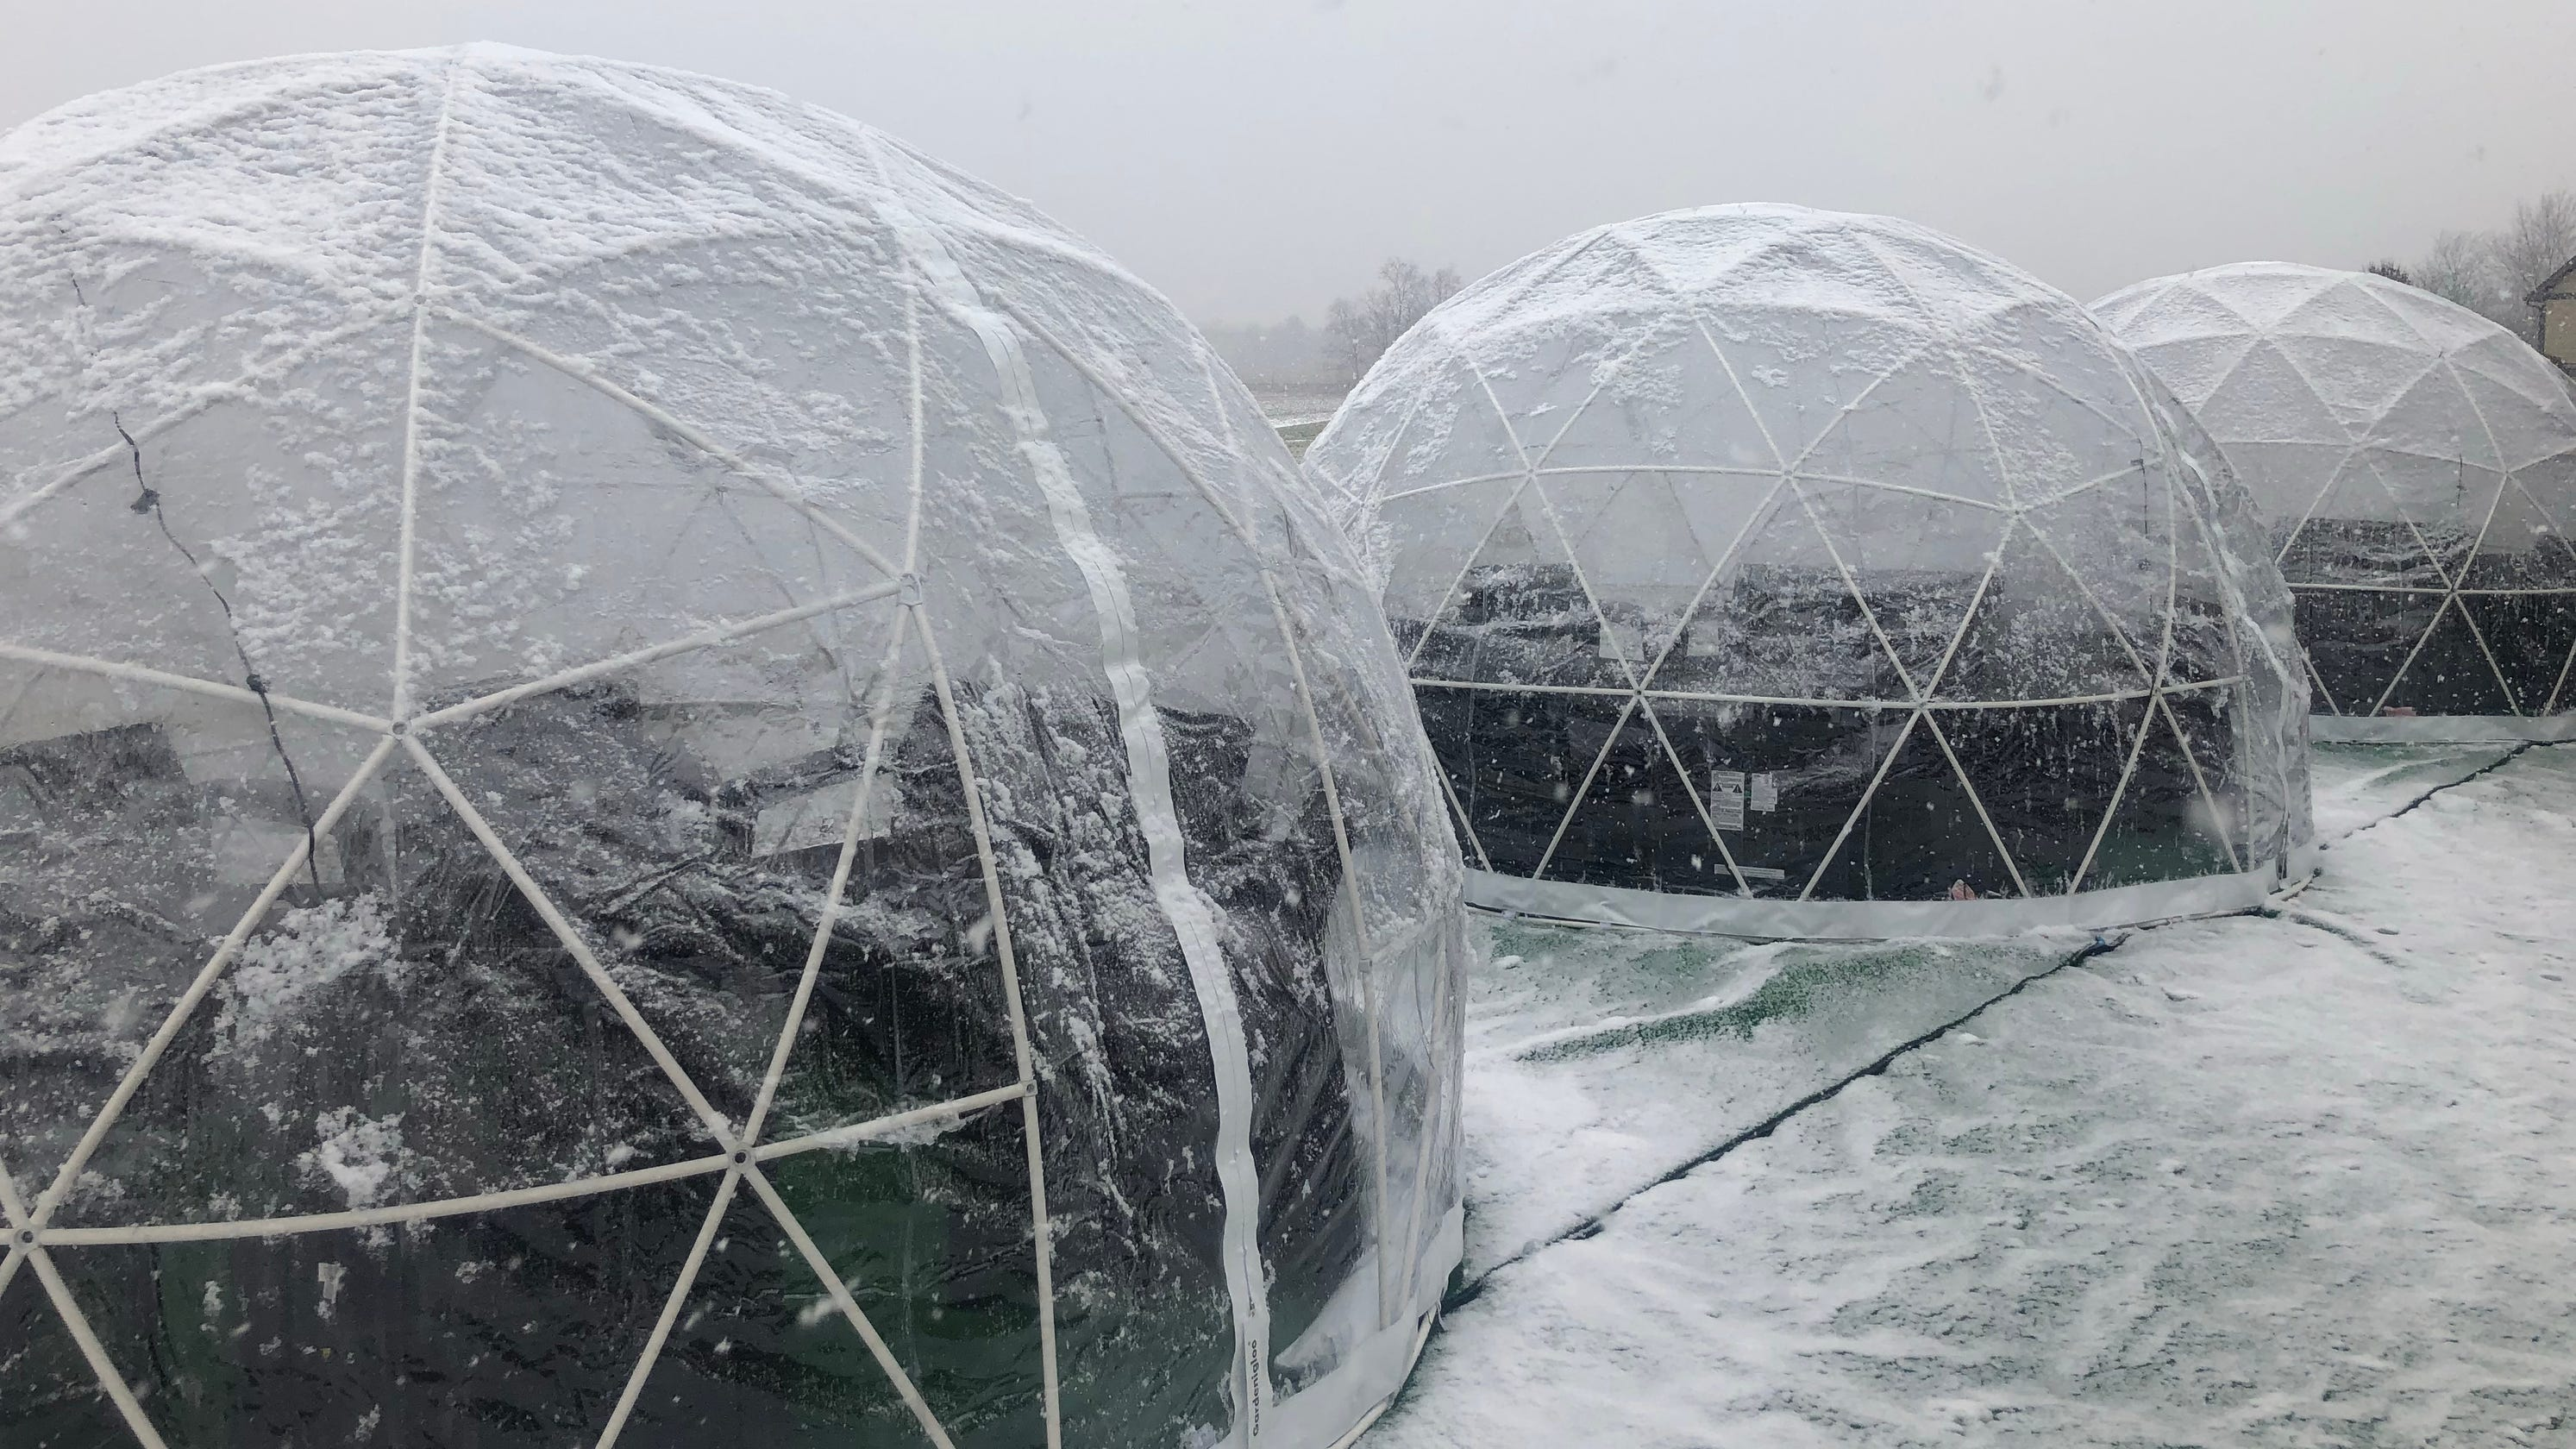 Urban Vines Winery in Westfield invites you into its igloo for wine